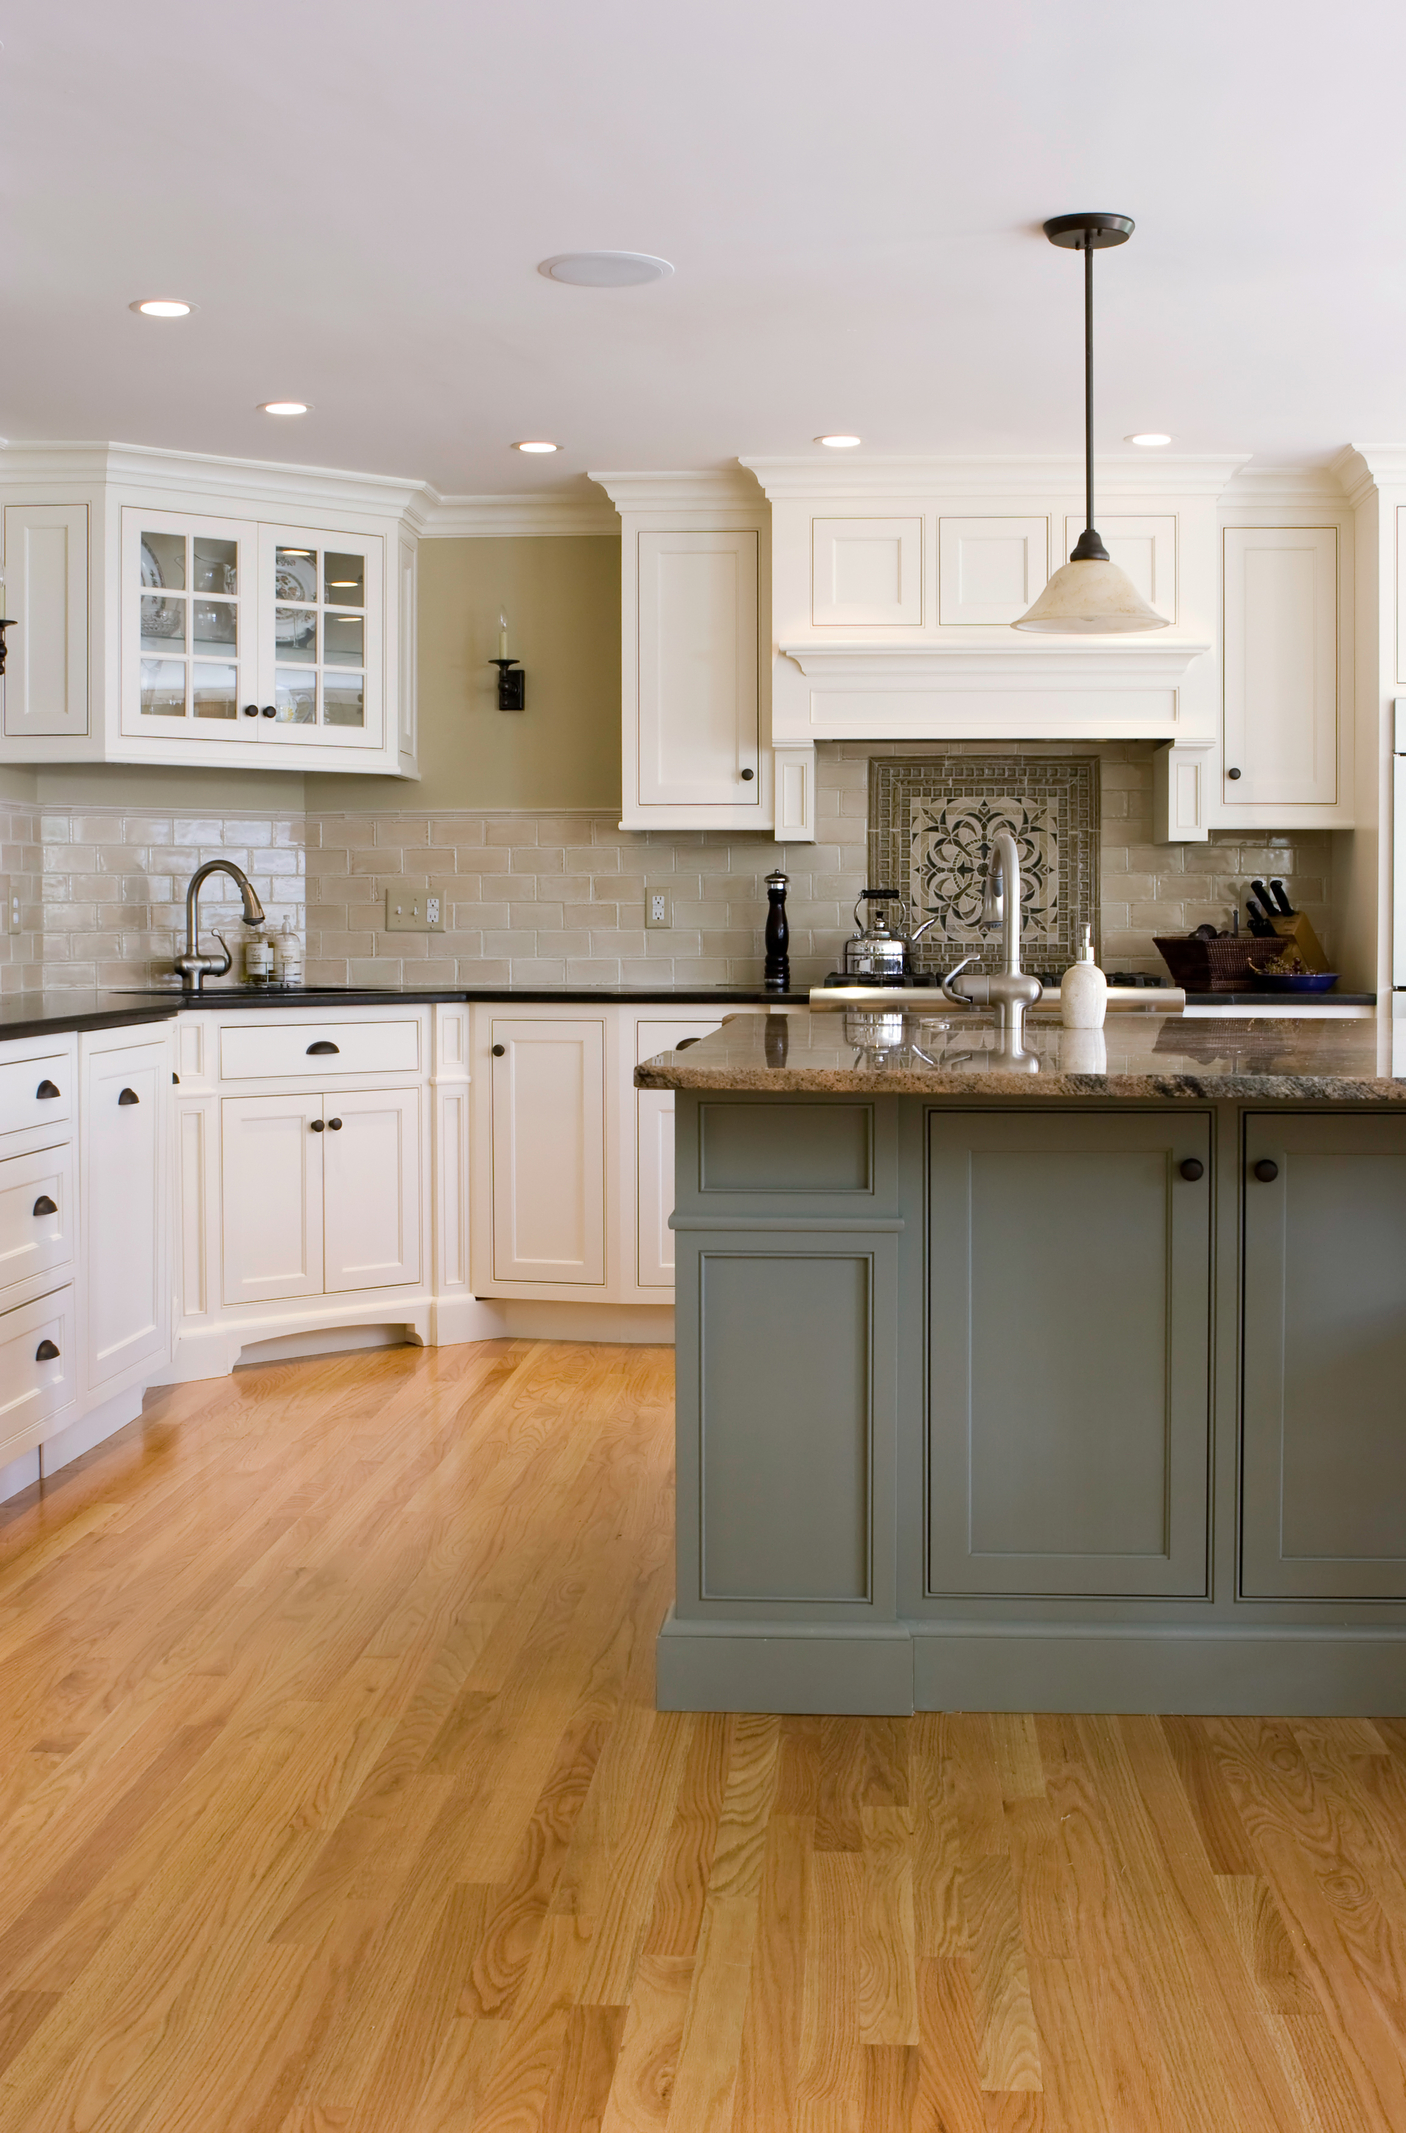 Interior designer temecula ca for Grey kitchen units sale